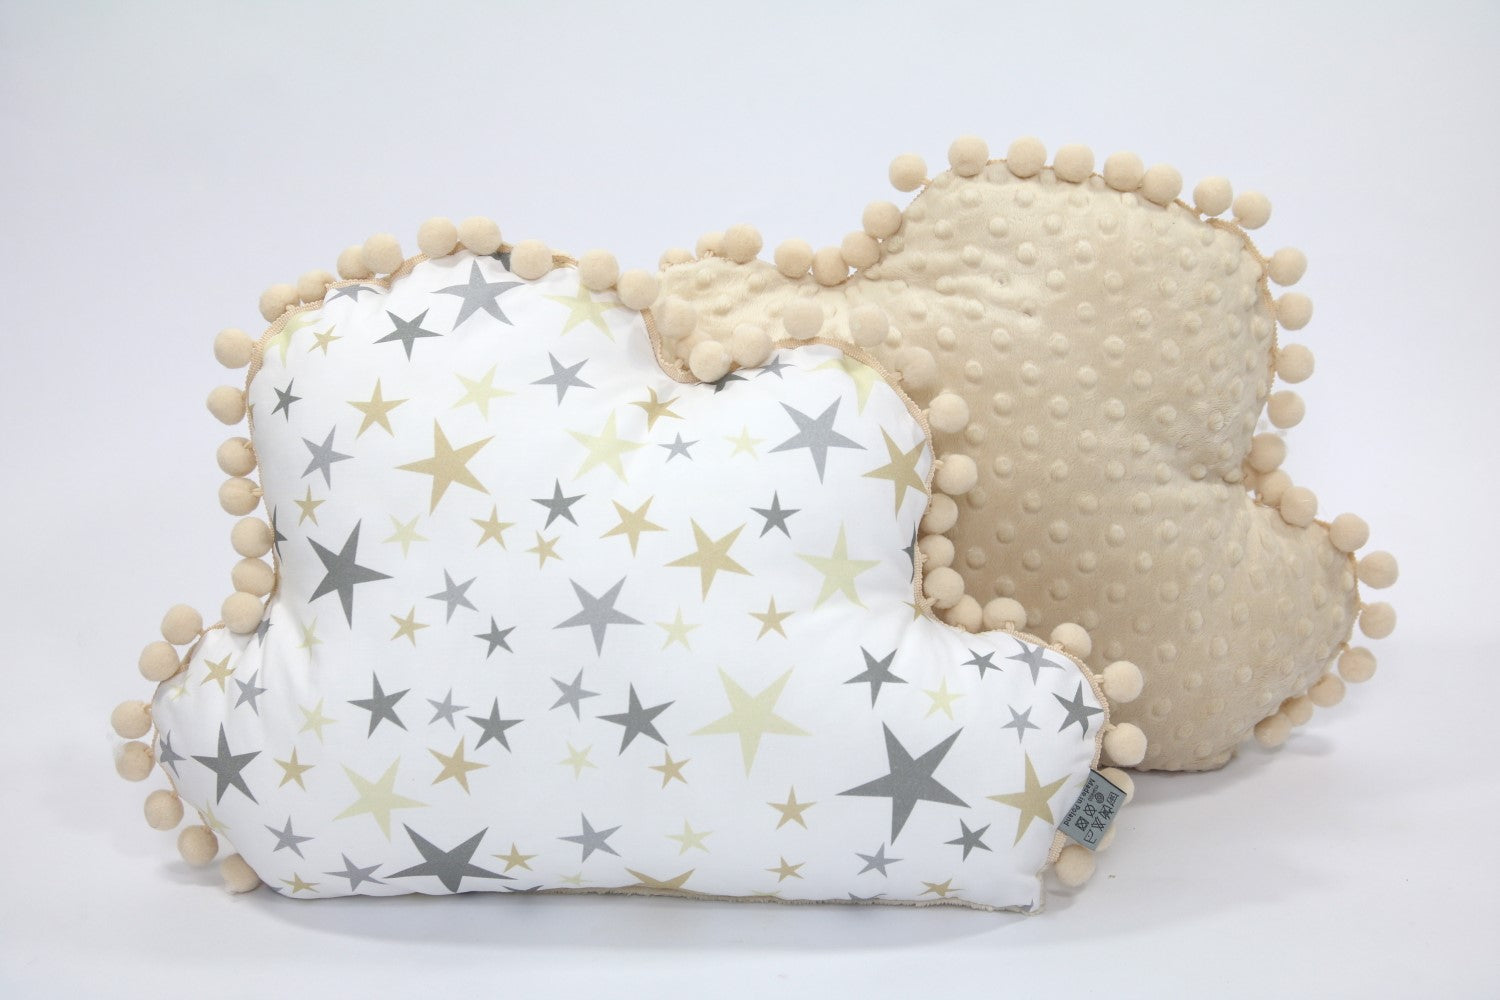 Cuscino A Forma Di Nuvola.Tiny Star Cuscino Nuvola Golden Dust E Minky Beige Rocketbaby